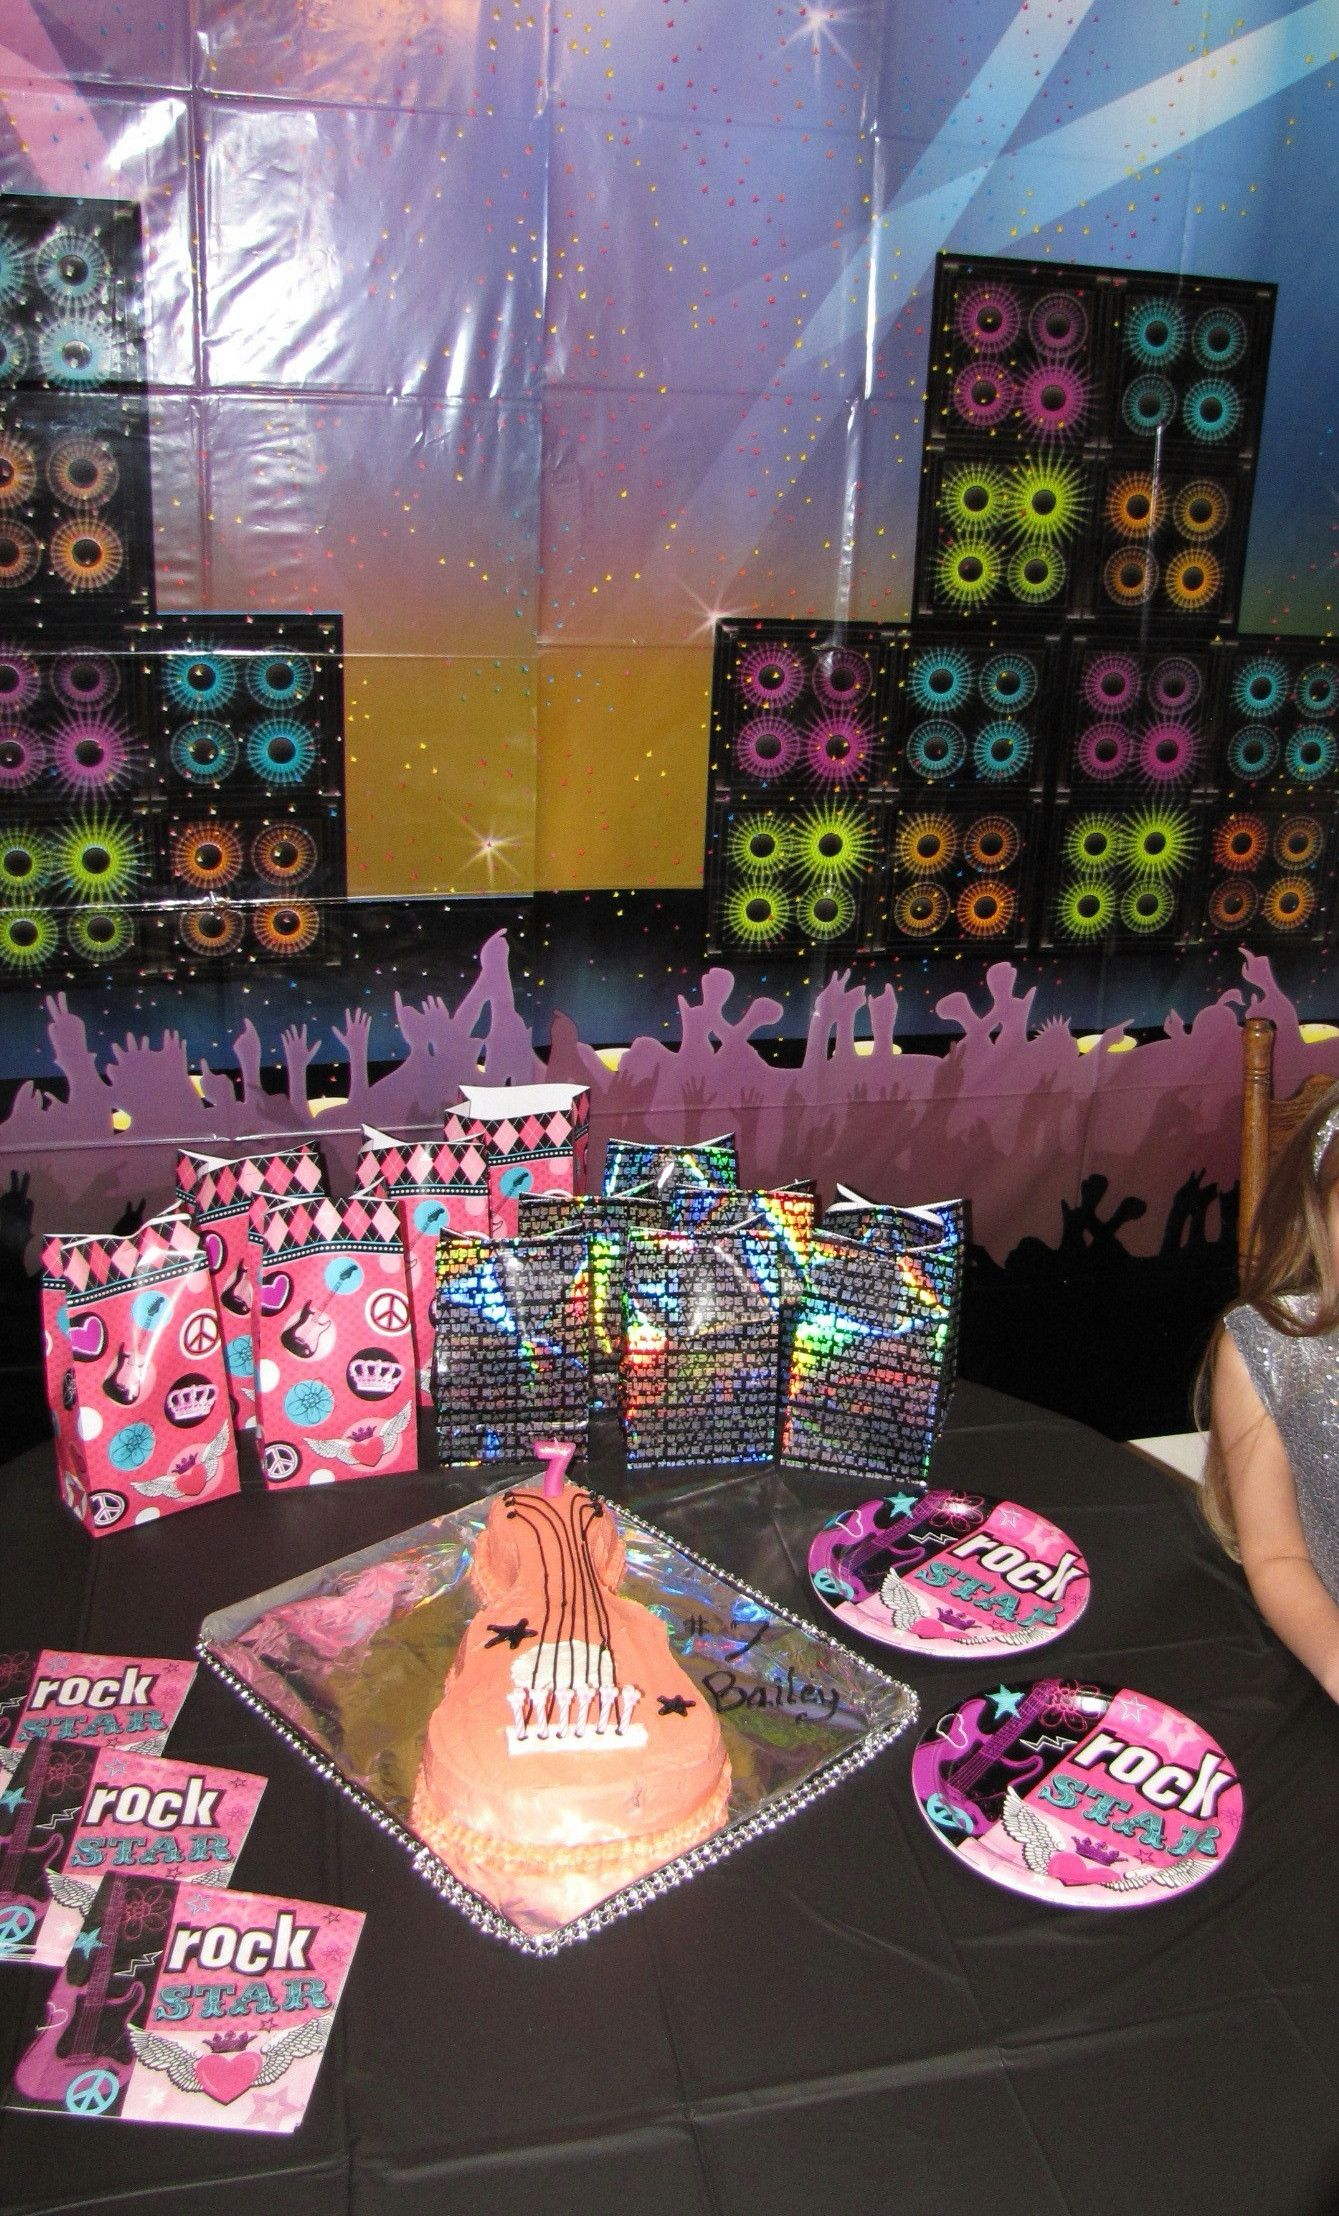 Bday party ideas & Girl Rock Star Party | Birthday Cakes and Cupcakes Iu0027ve attempted ...